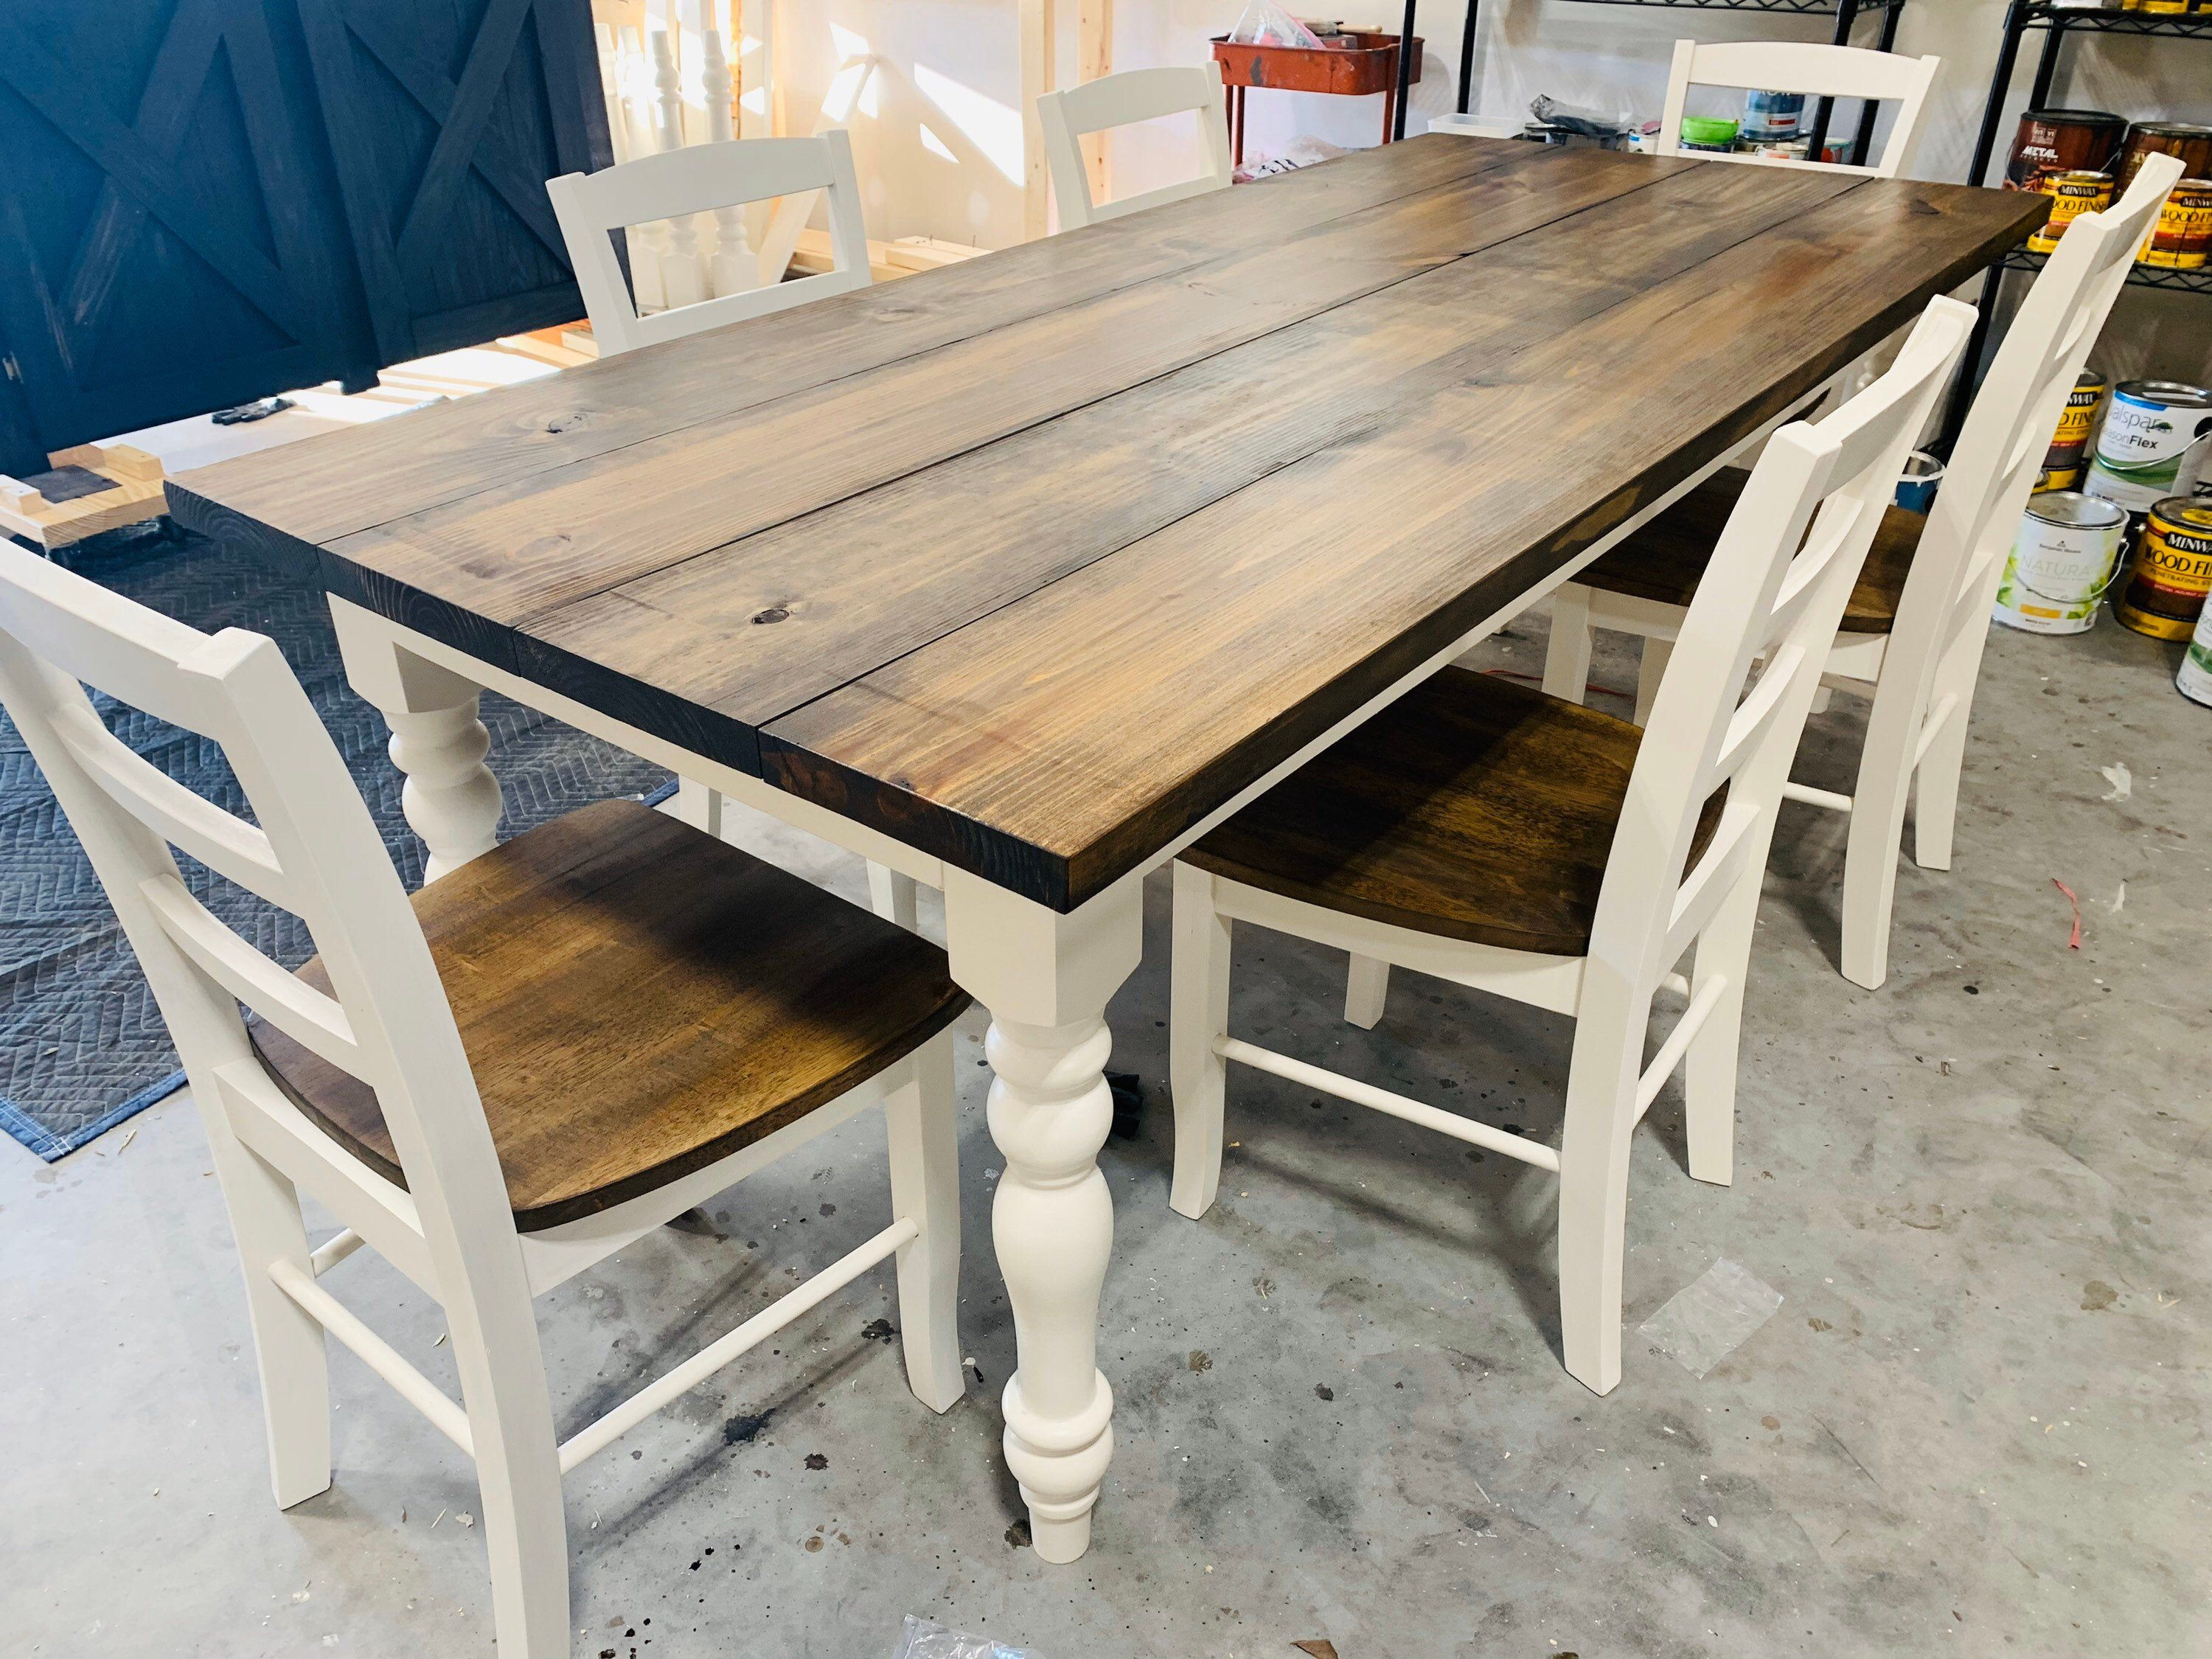 7ft rustic farmhouse table with chairs and turned legs